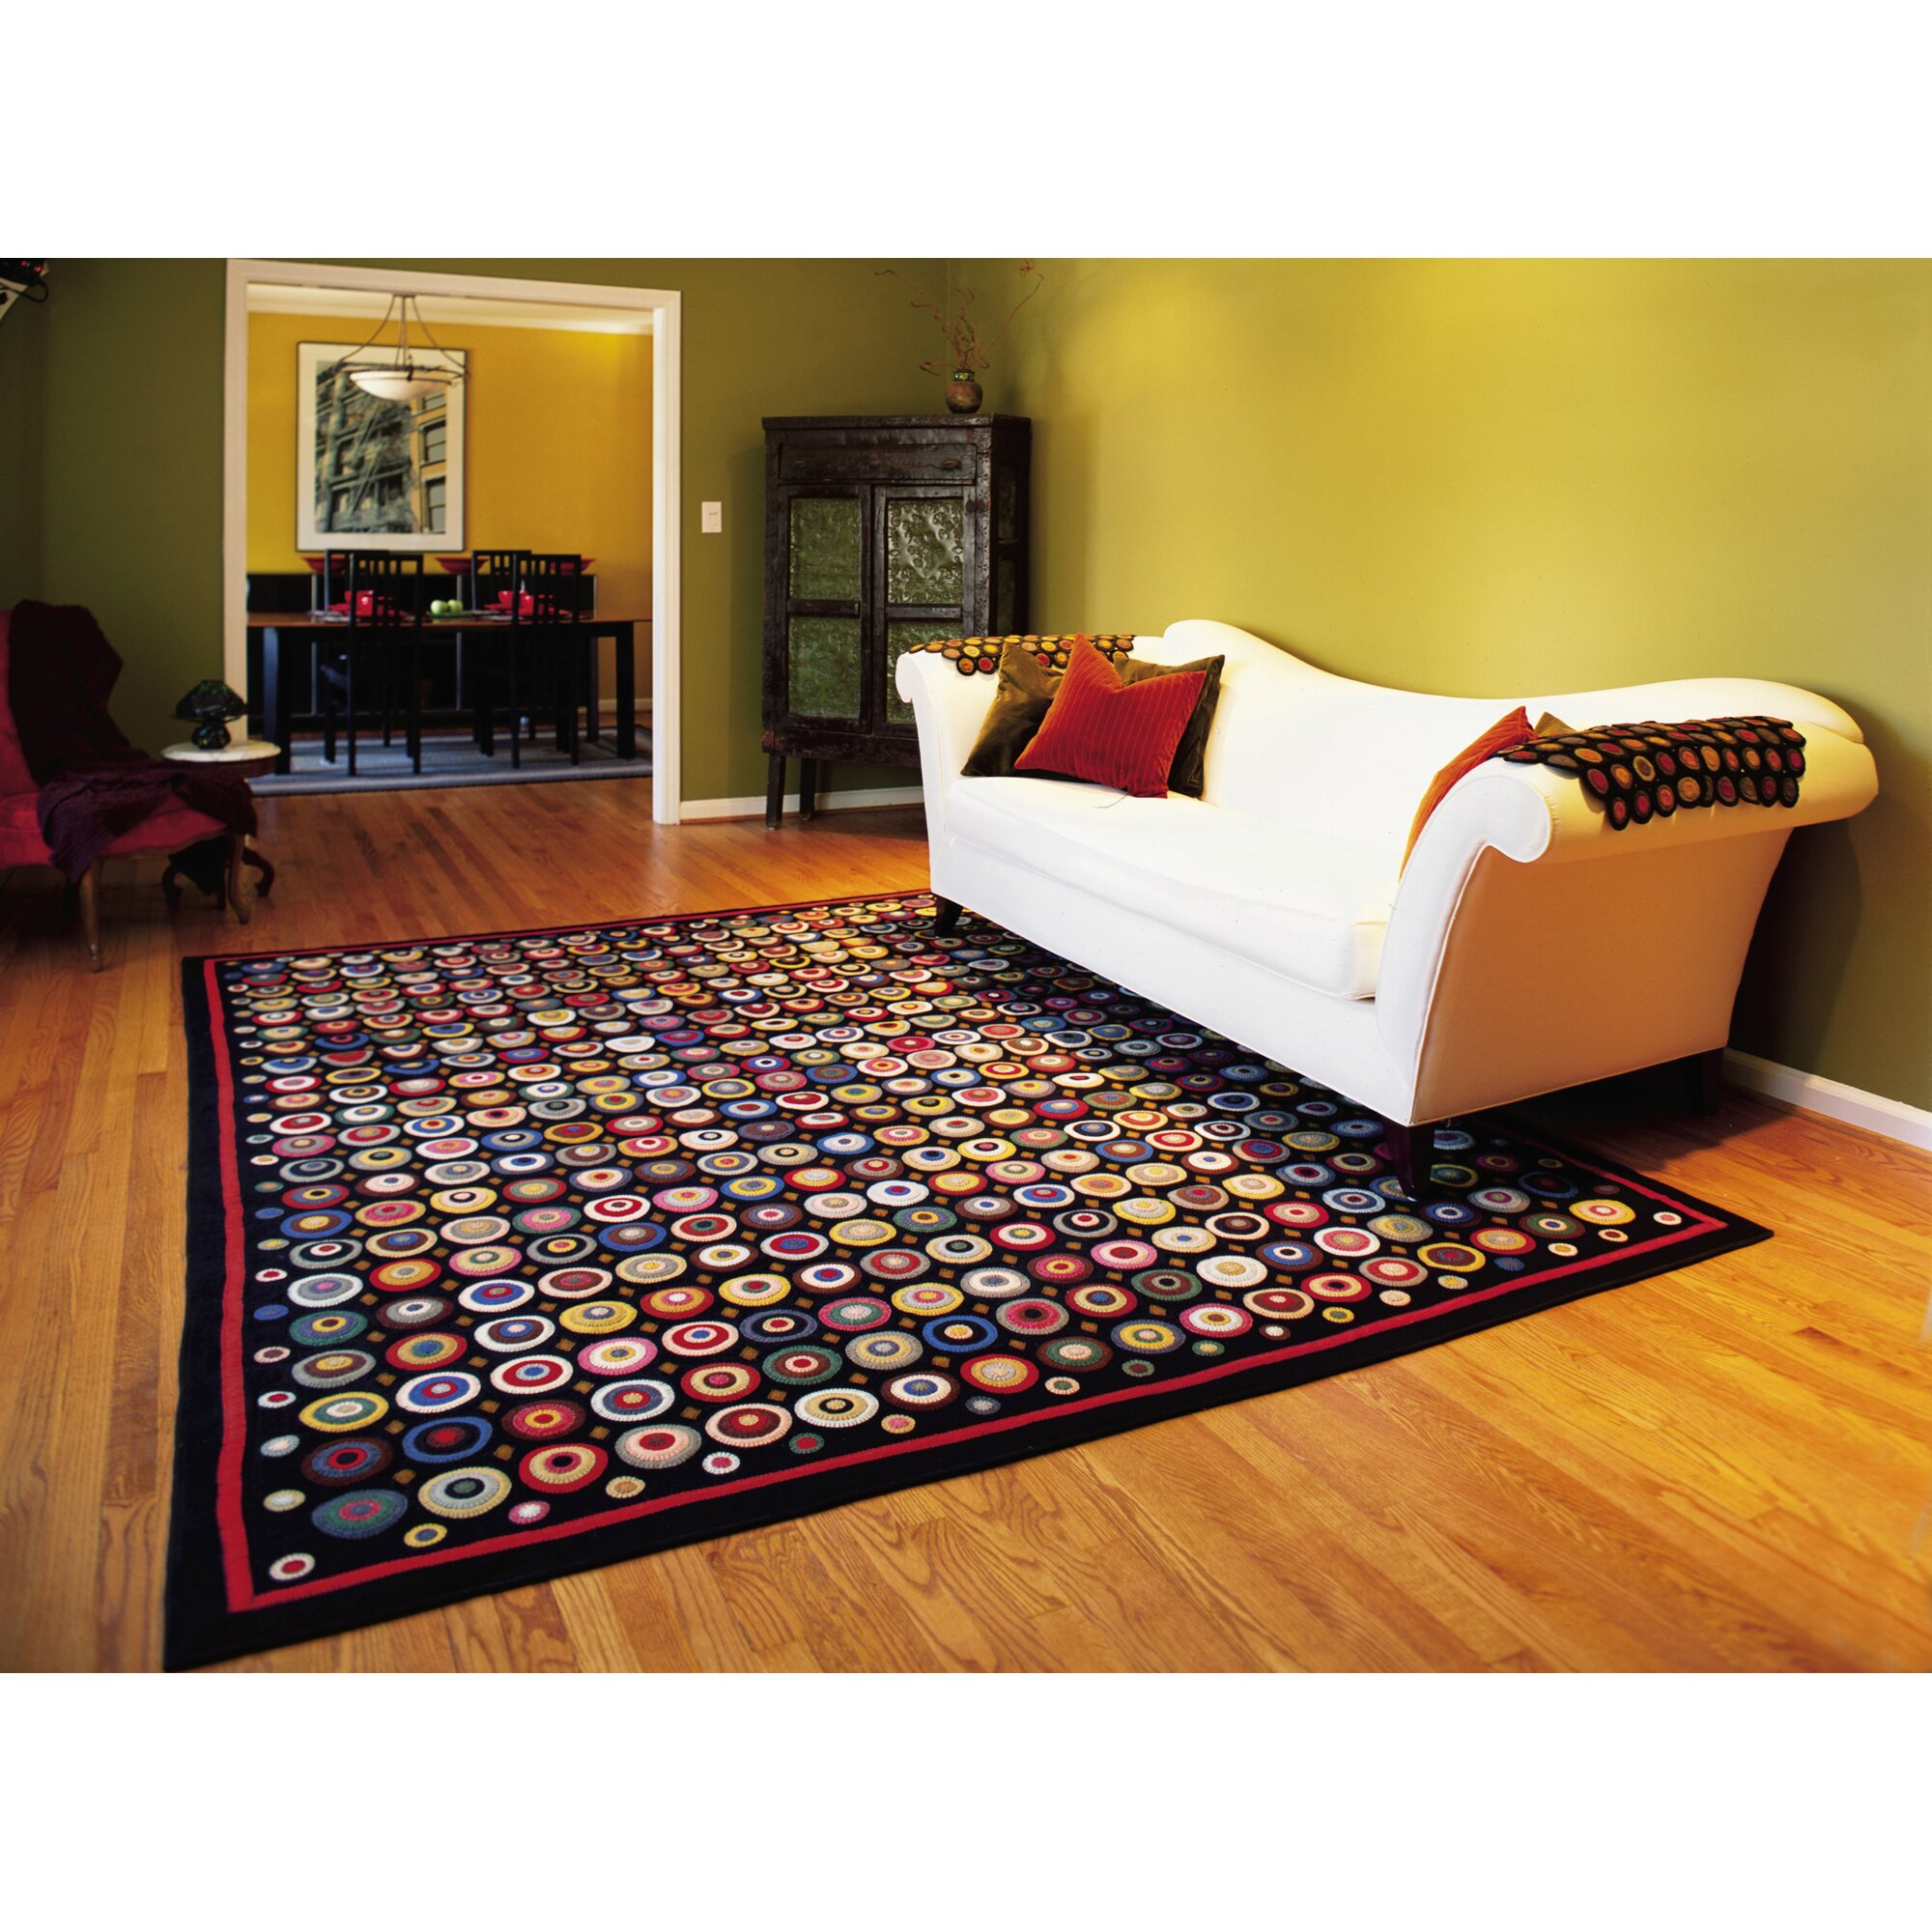 penny coin black area rug - Homespice Decor